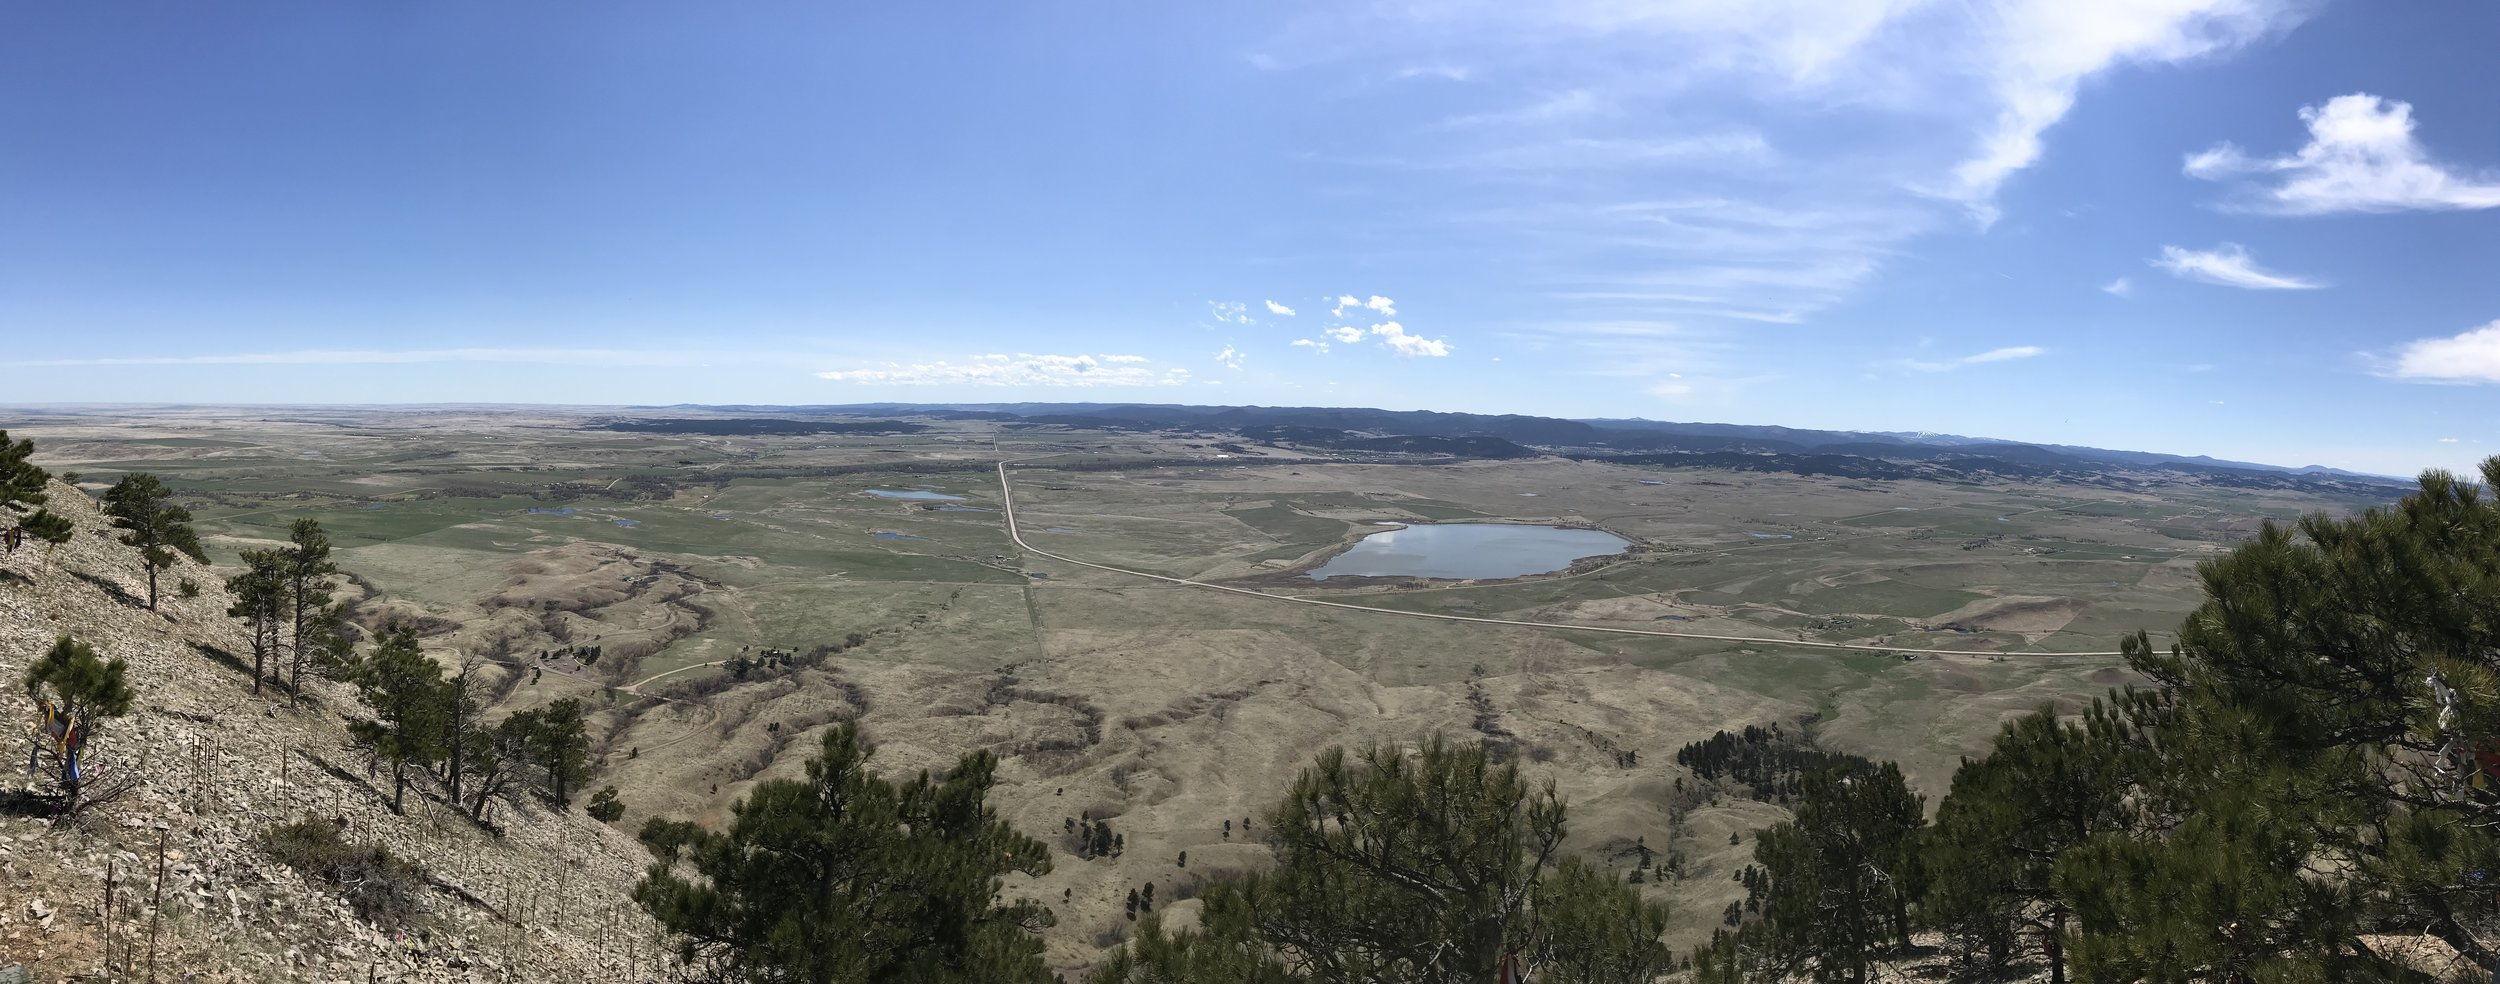 The view outward across South Dakota from the summit of Bear Butte Mountain.